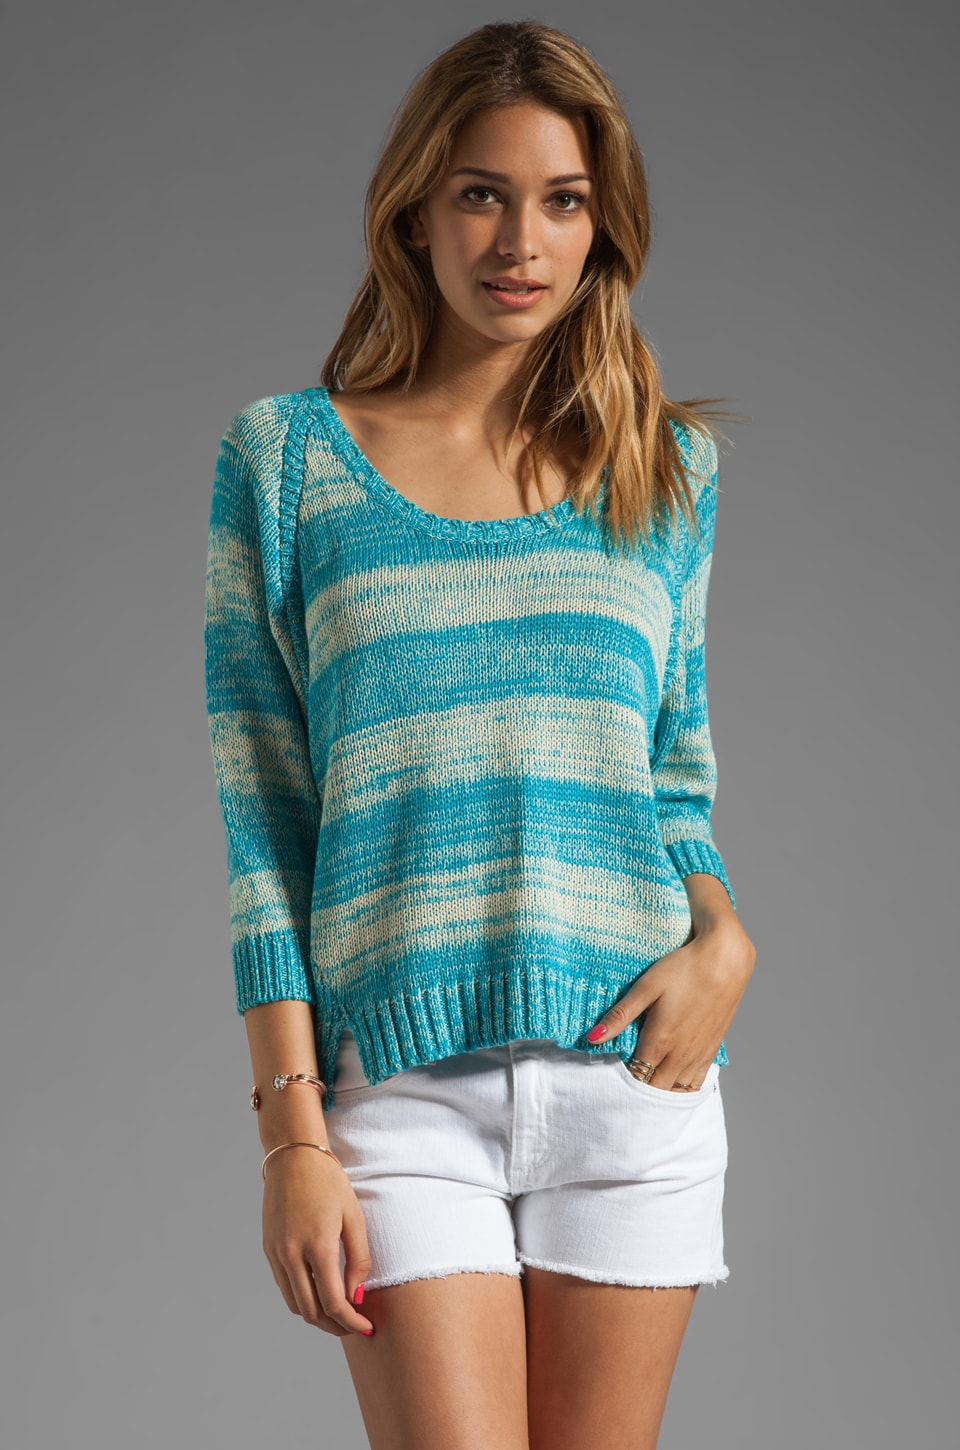 Central Park West Chesapeake Dolman Sweater in Aquamarine